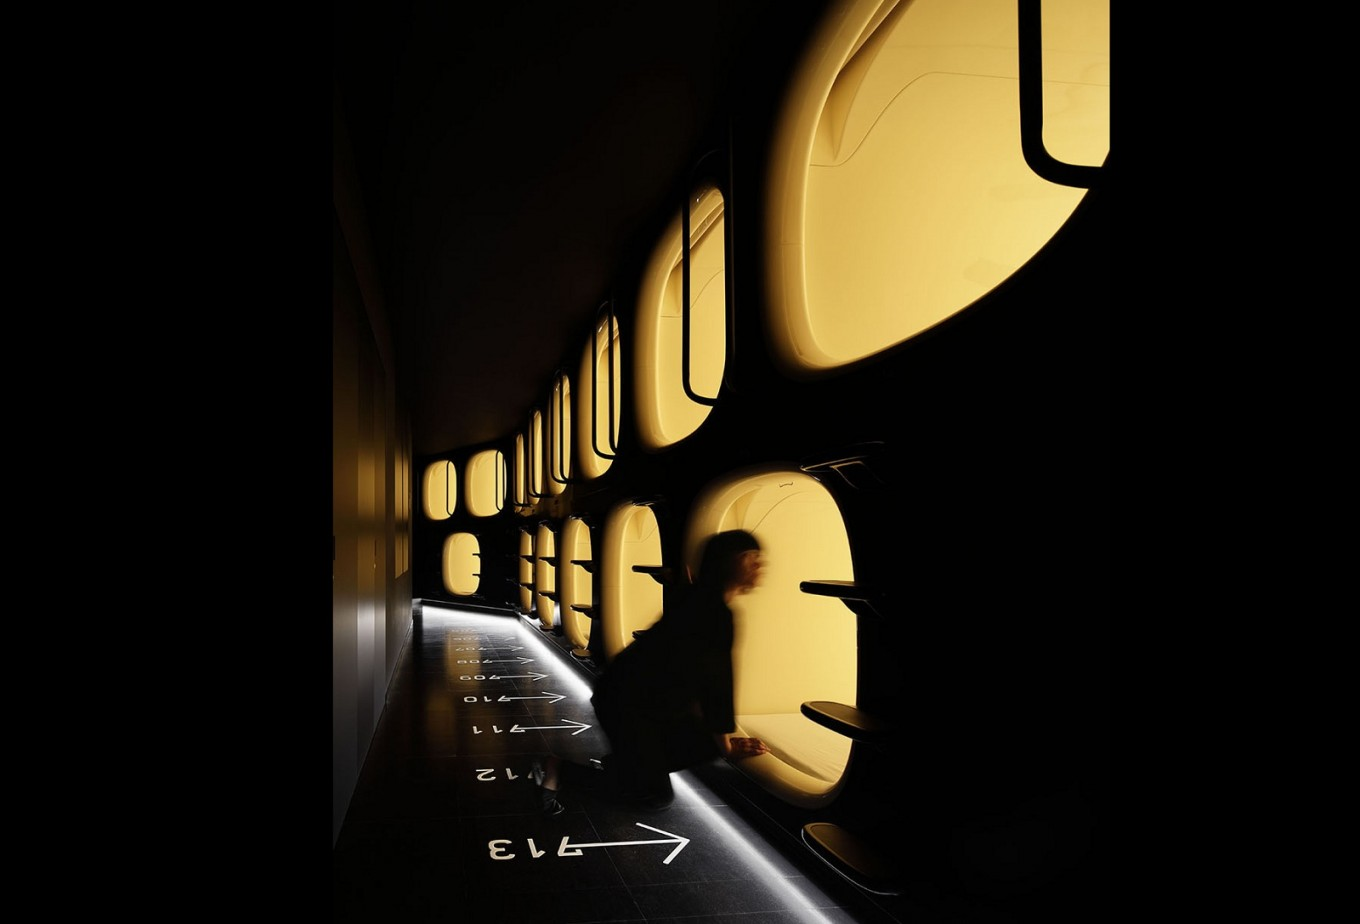 Japan's capsule hotels catching on among tourists from abroad